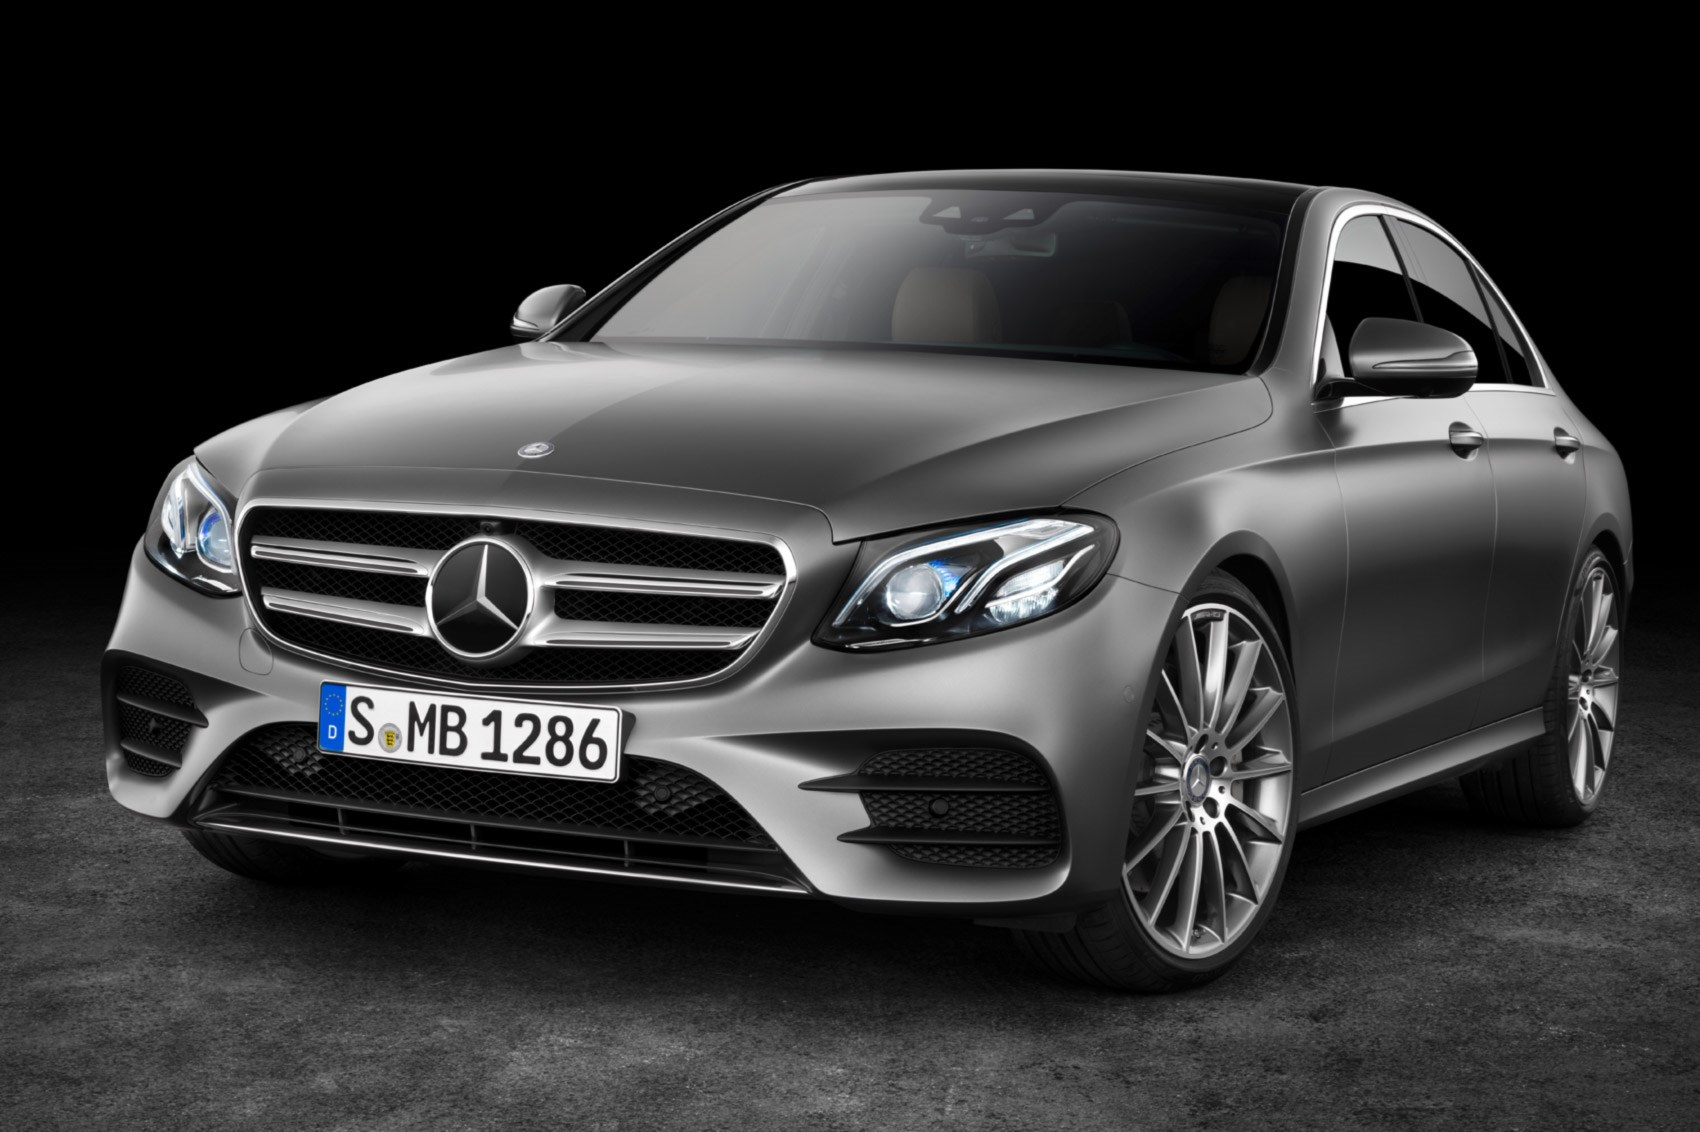 New Mercedes-Benz E-class unveiled at 2016 Detroit motor show | CAR ...